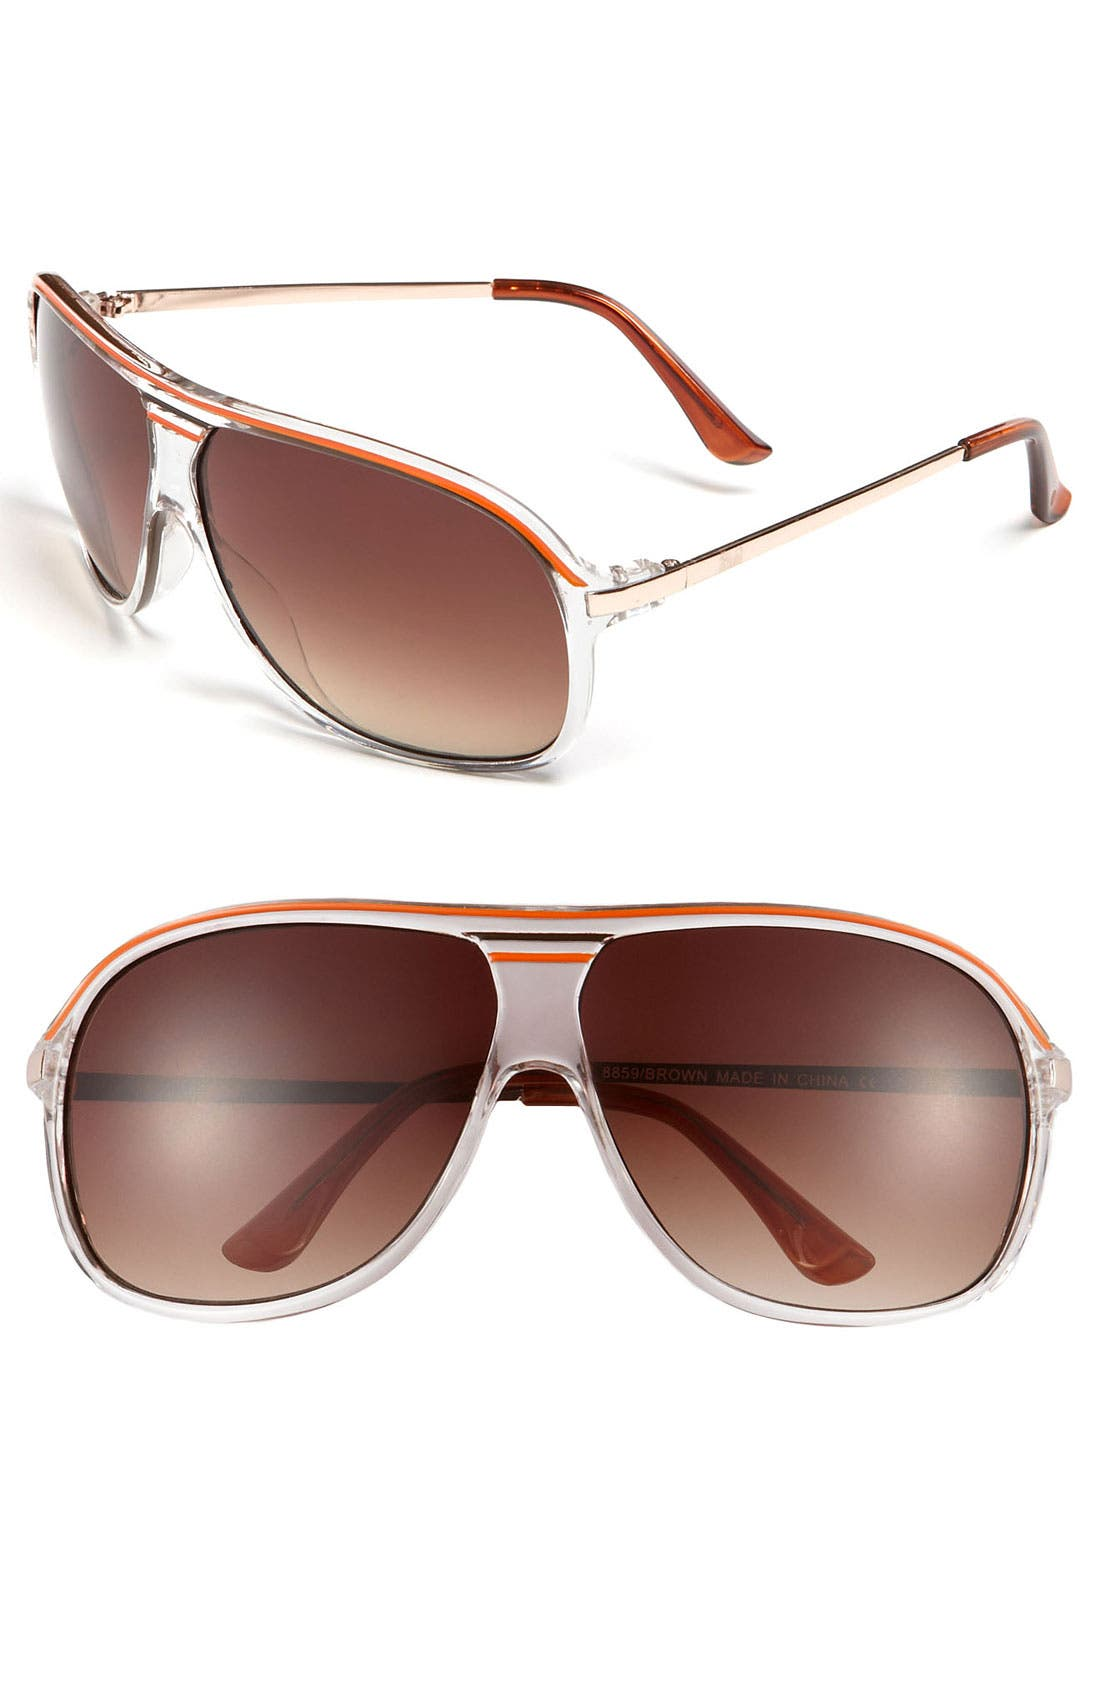 Alternate Image 1 Selected - KW 'Quest' Aviator Sunglasses